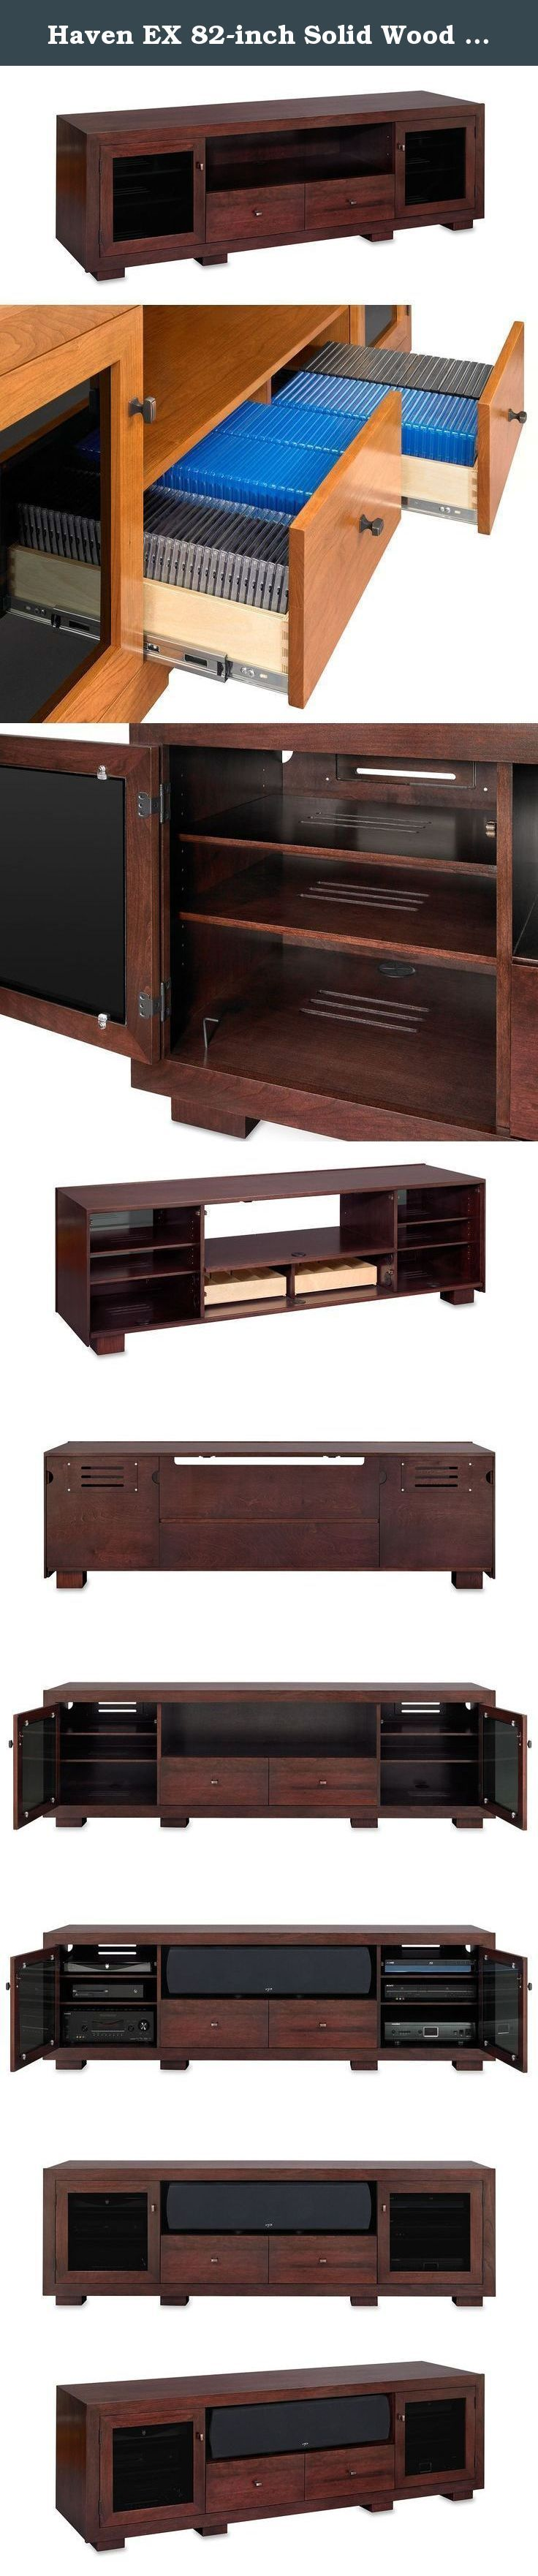 10 Ideas About Solid Wood Tv Stand On Pinterest Wood Tv